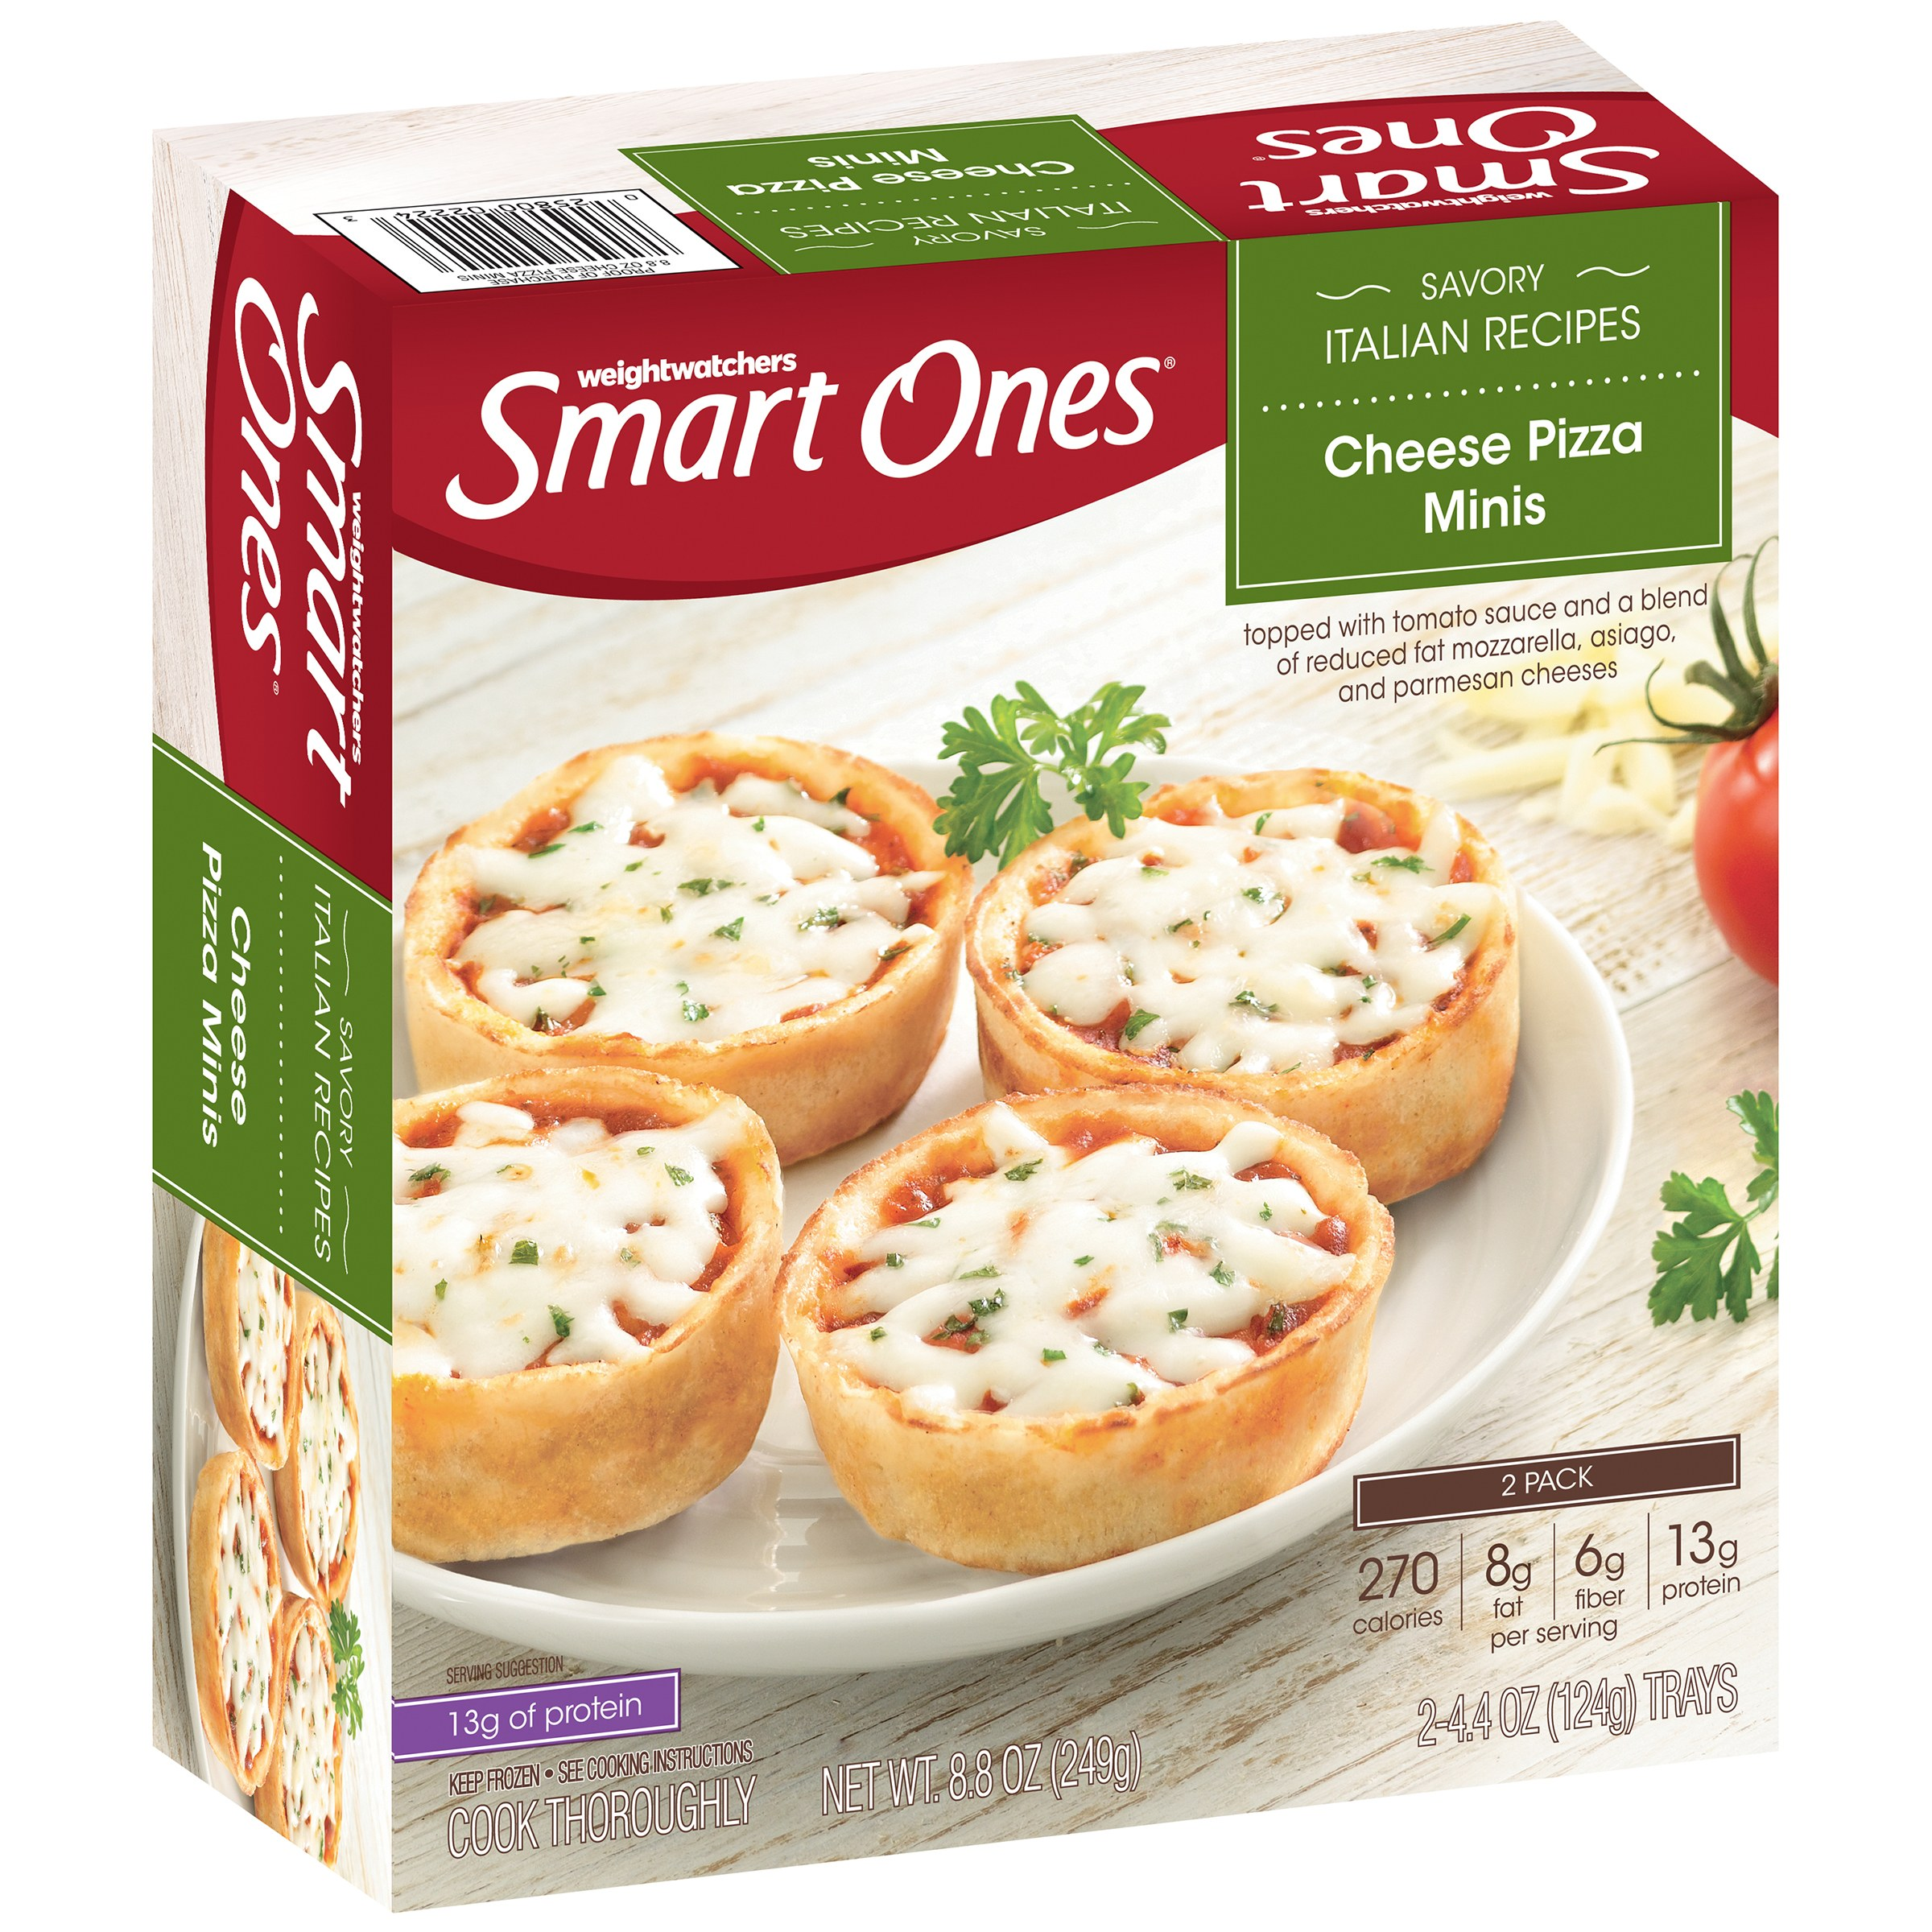 Weight Watchers Smart Ones® Savory Italian Recipes Cheese Pizza Minis 8.8 oz. Box